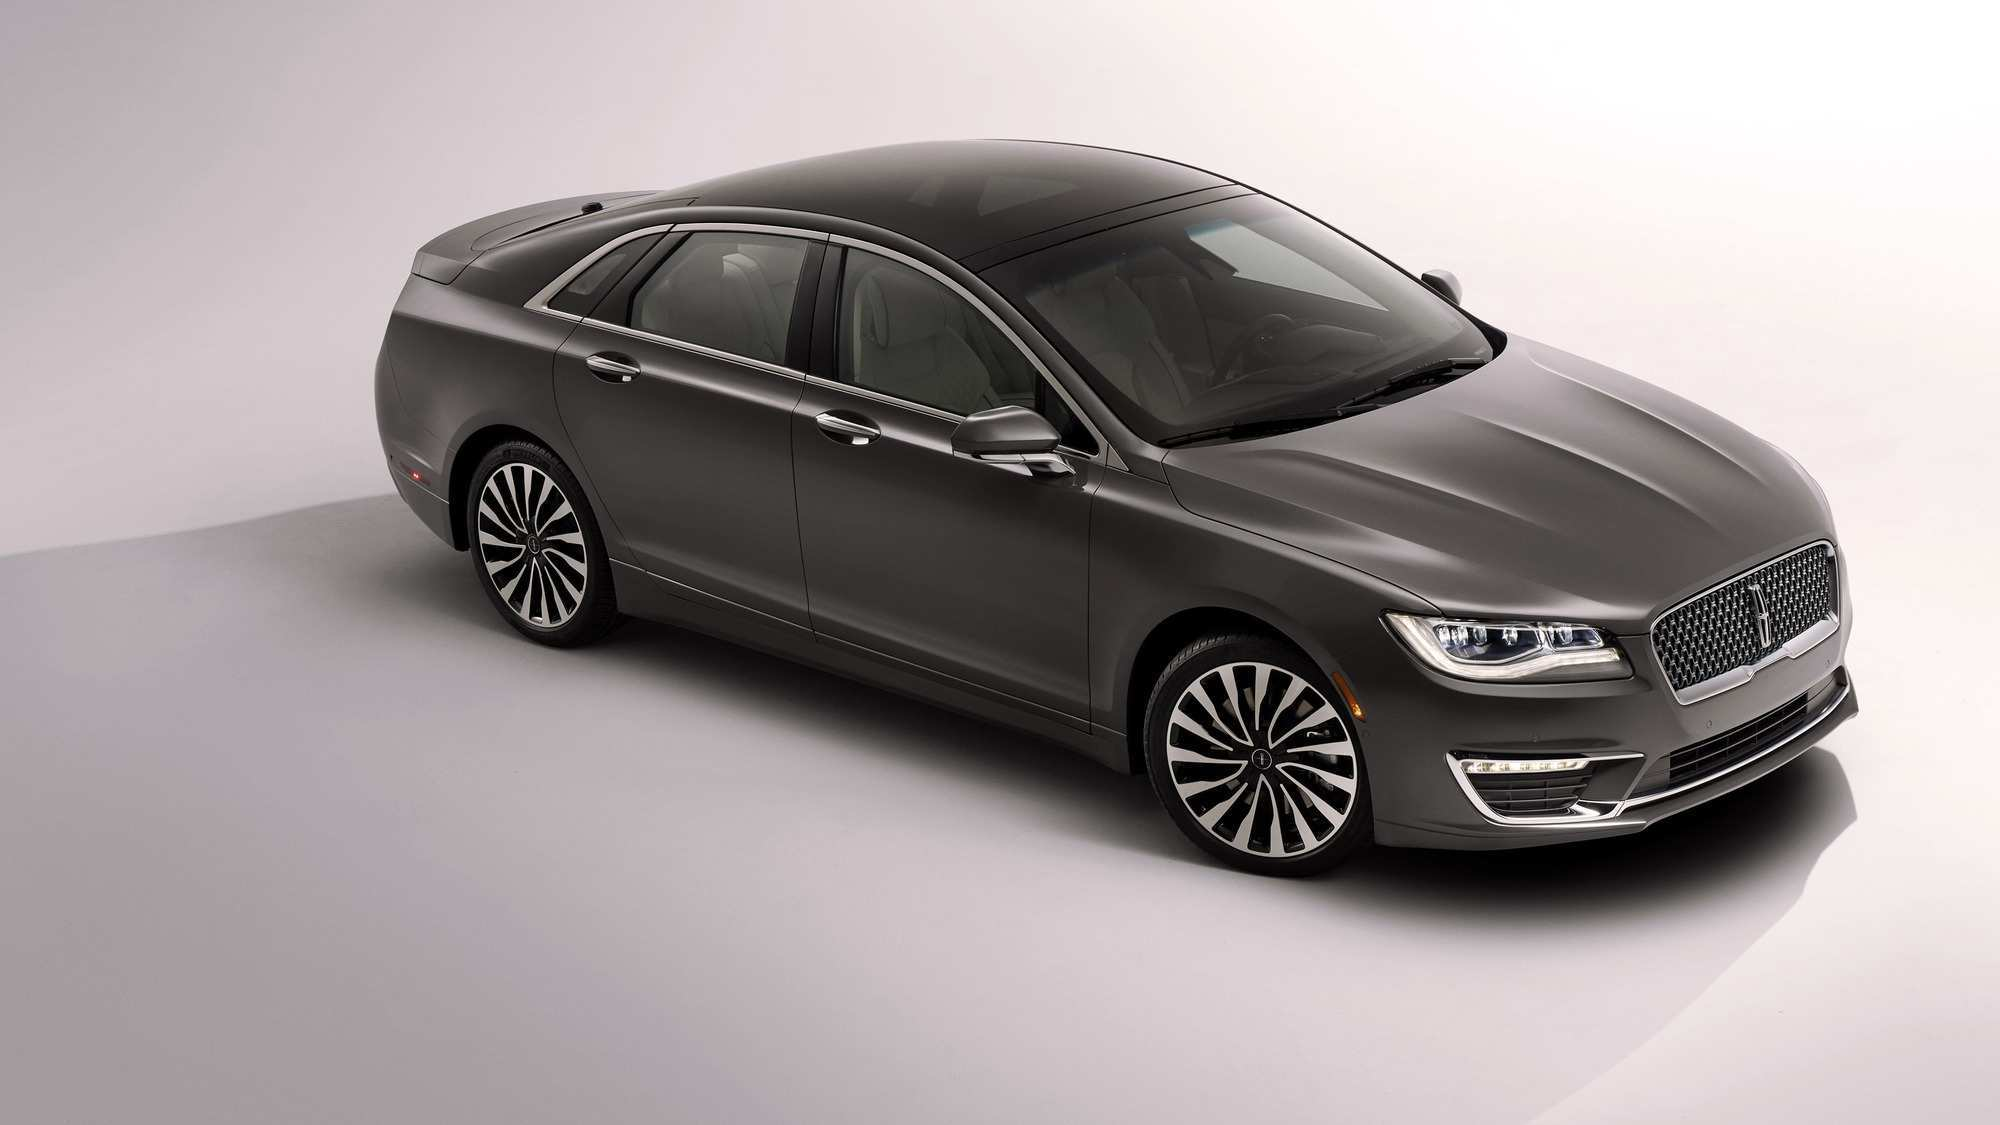 Spy Shots Lincoln Mkz Sedan Pictures